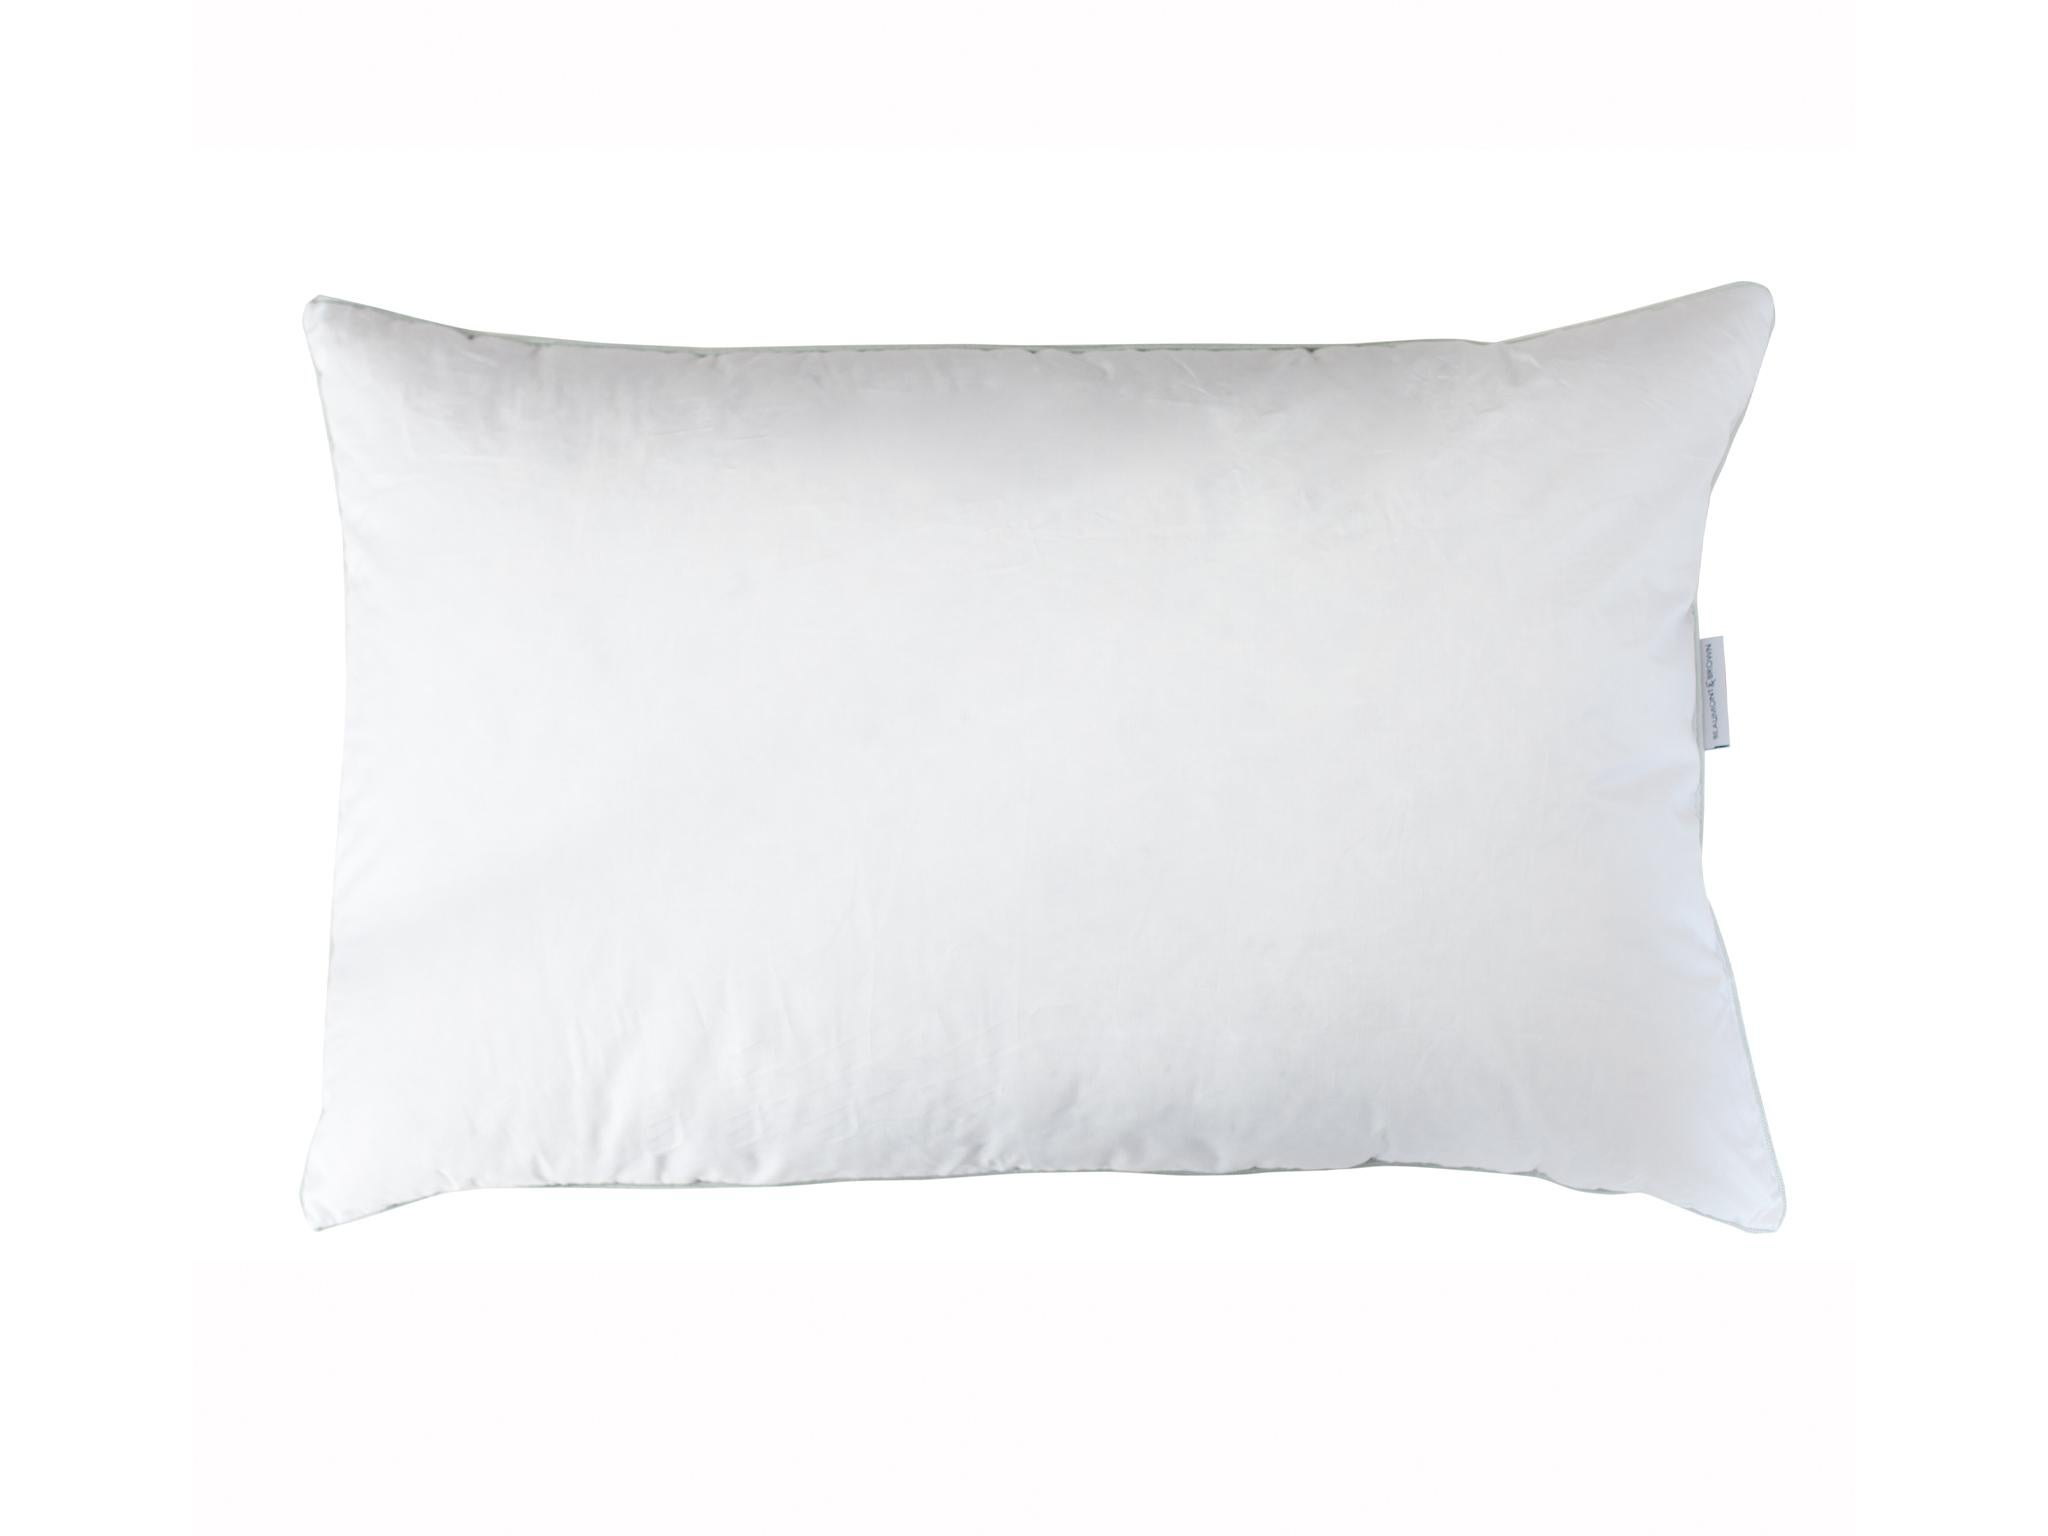 Cold Foam Luxury Bed Pillows for sale